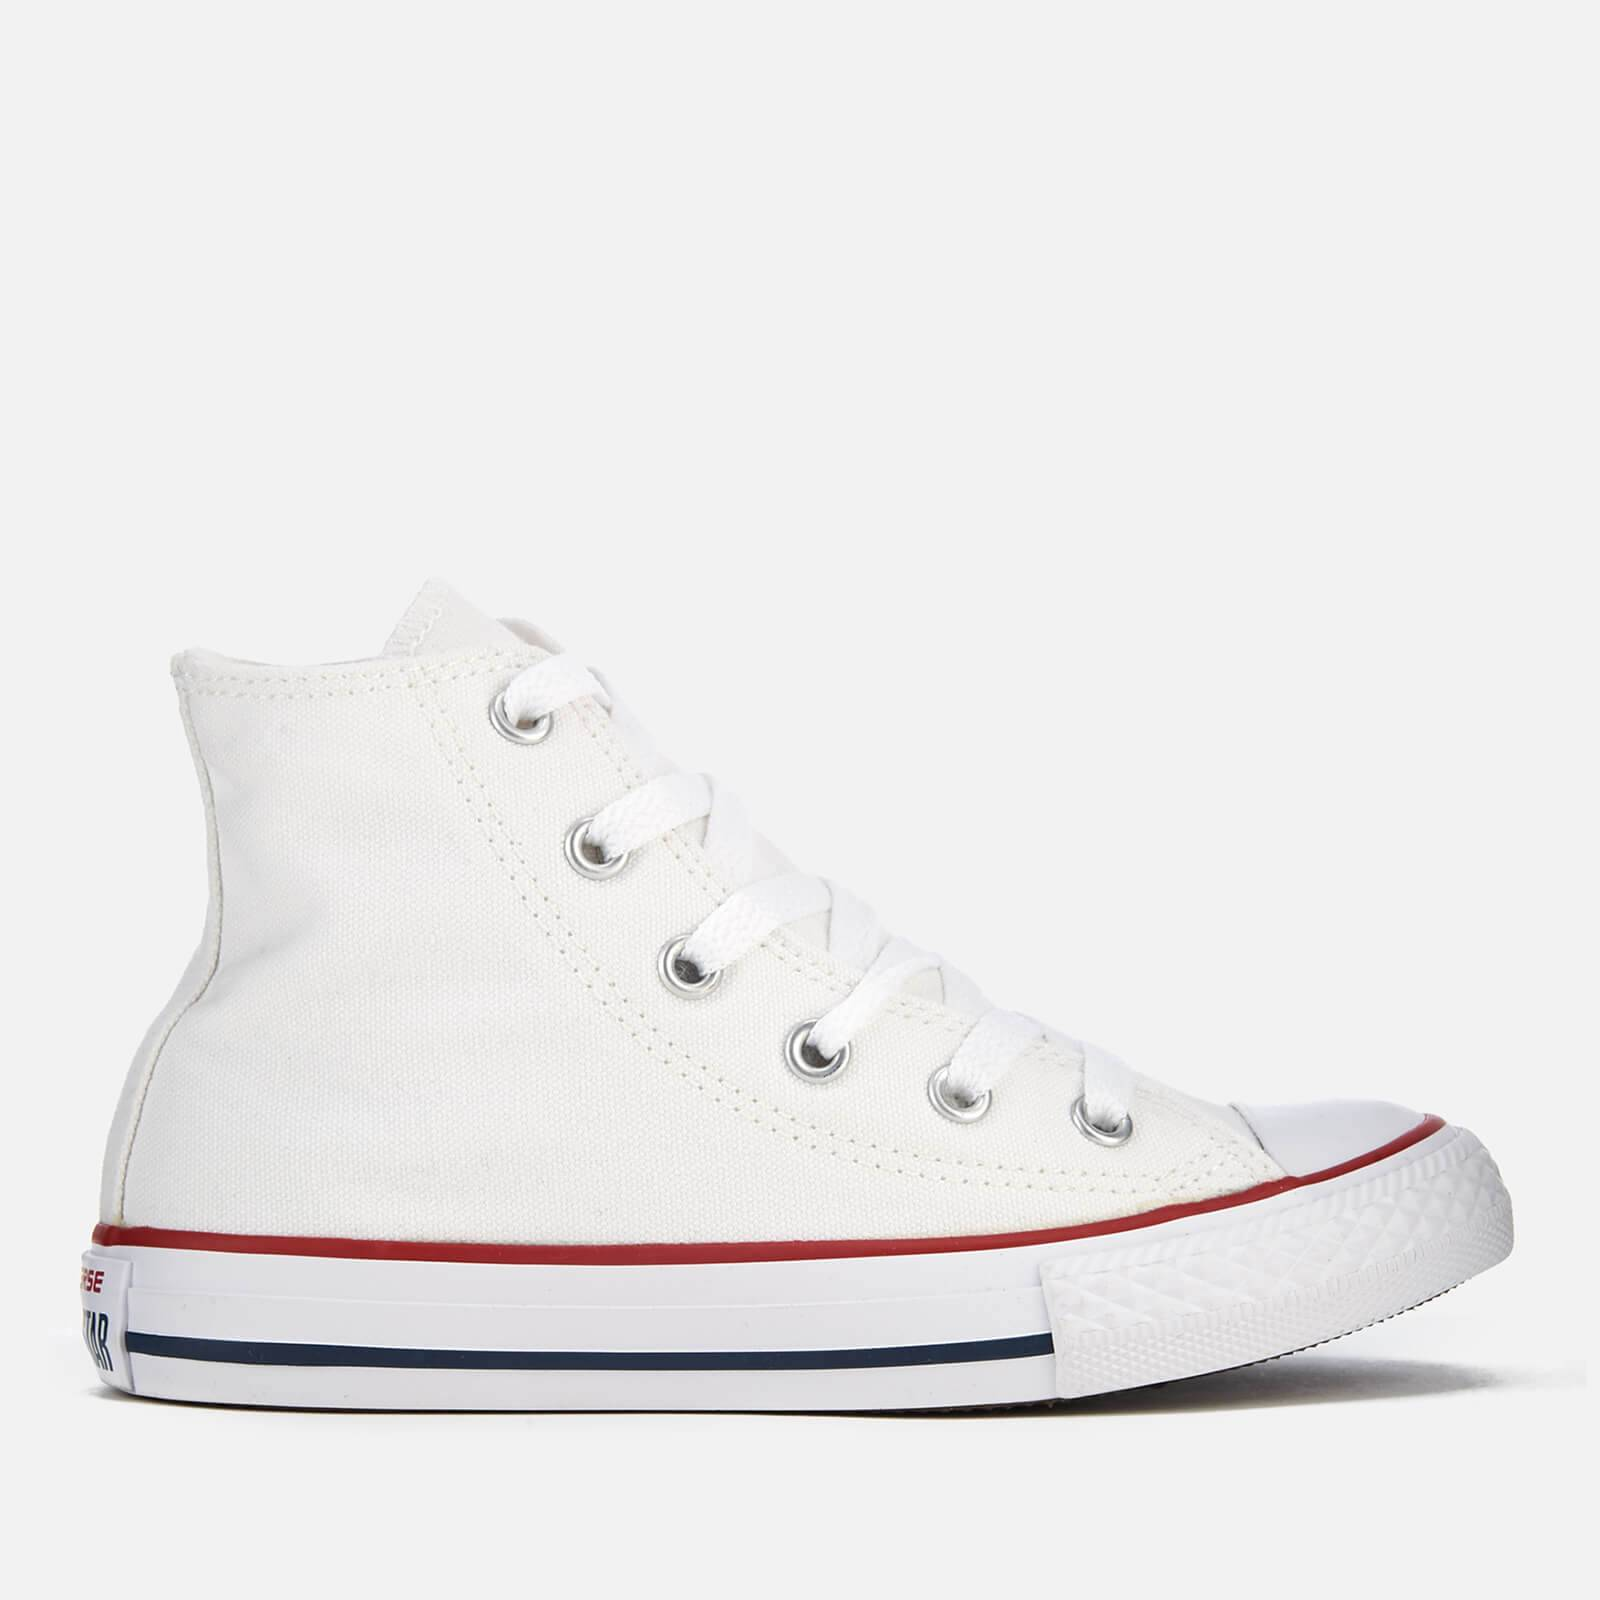 Converse Kids Chuck Taylor All Star Hi-Top Trainers - Optical White - UK 11 Kids - White